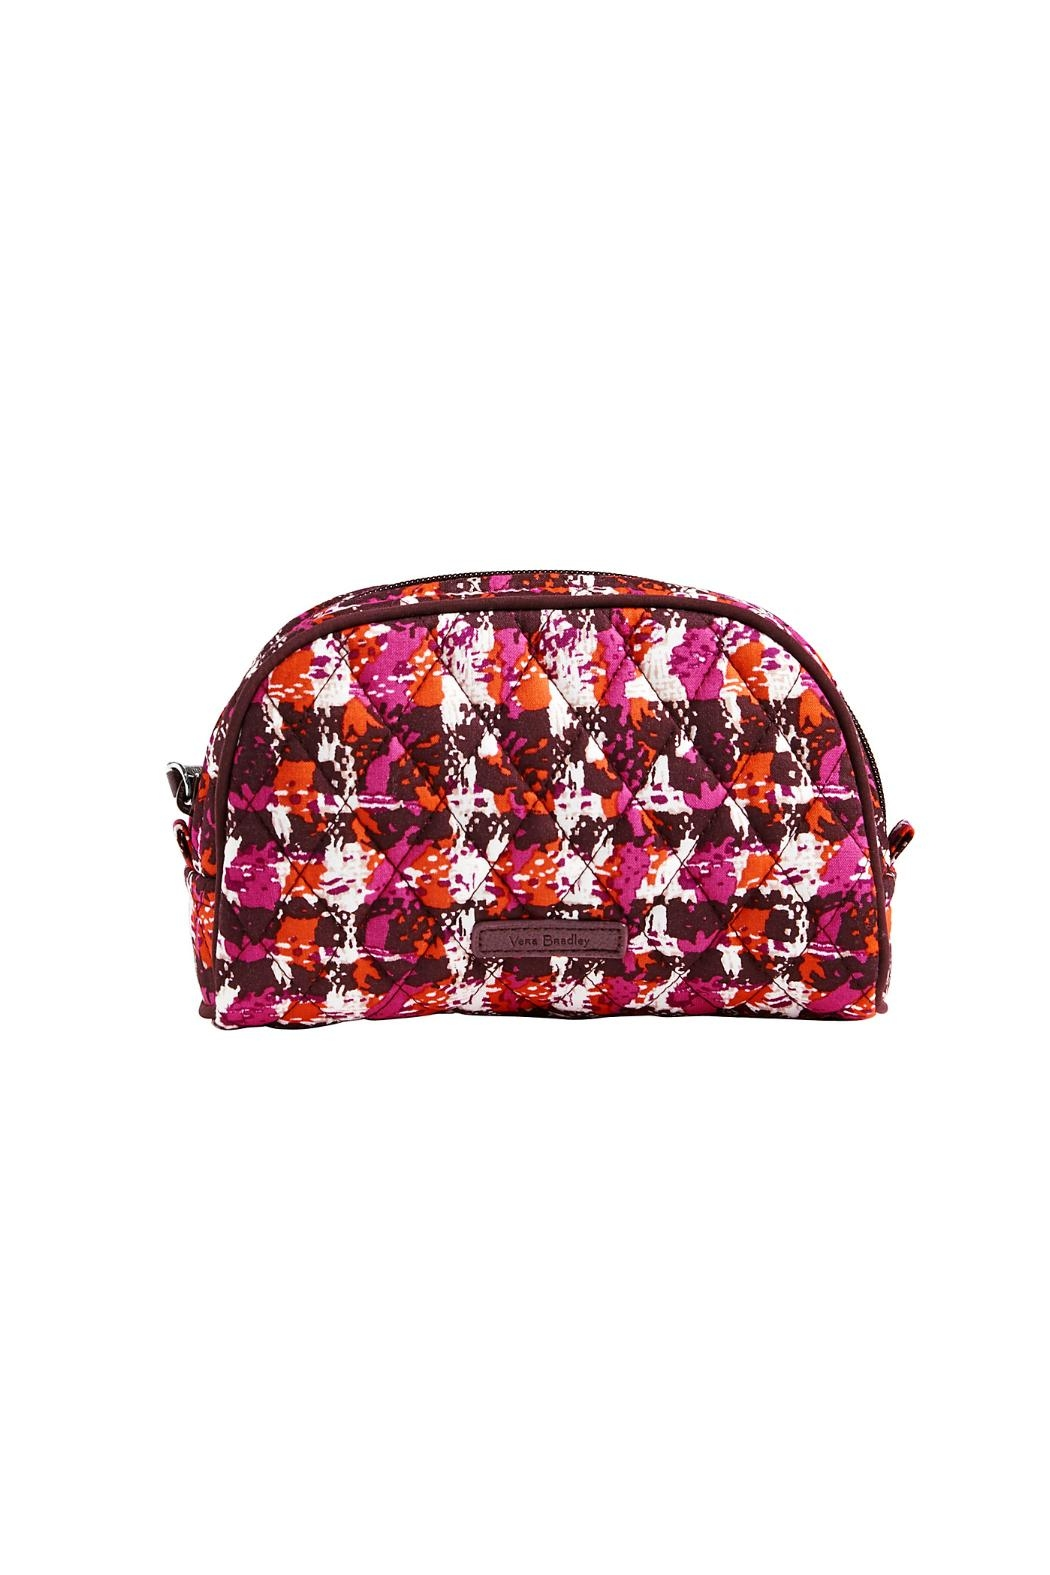 Vera Bradley Small Houndstooth Tweed Pouch - Main Image